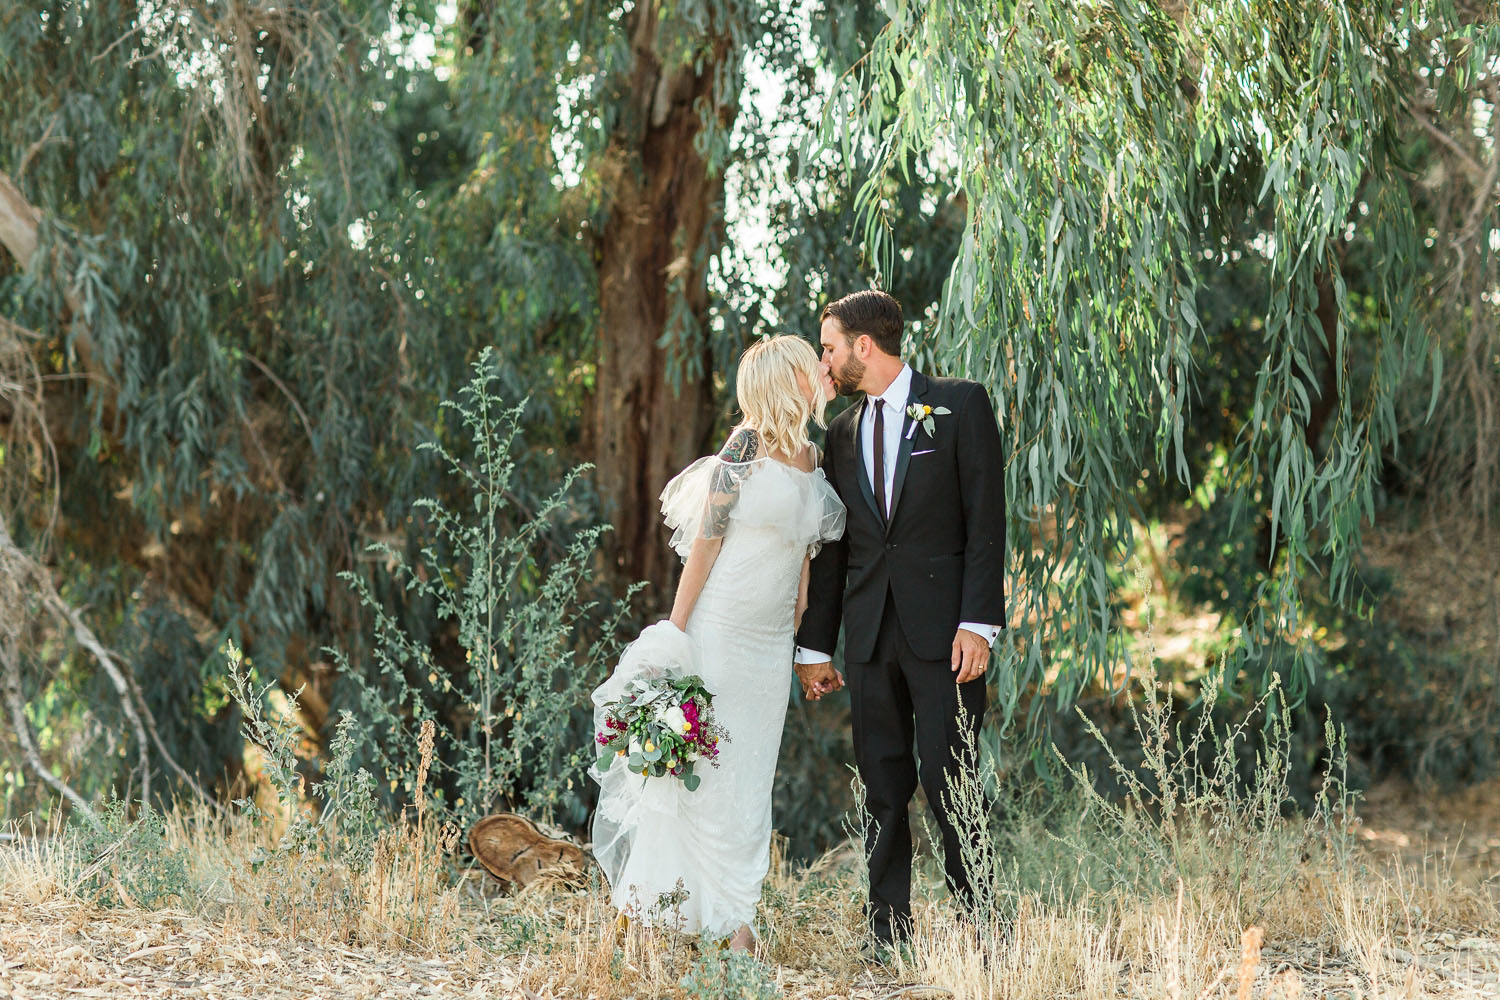 The Photege - Elegant Boho Wedding on Suburu Farm in Bakersfield California- Cassie and Darin Buoni-3012